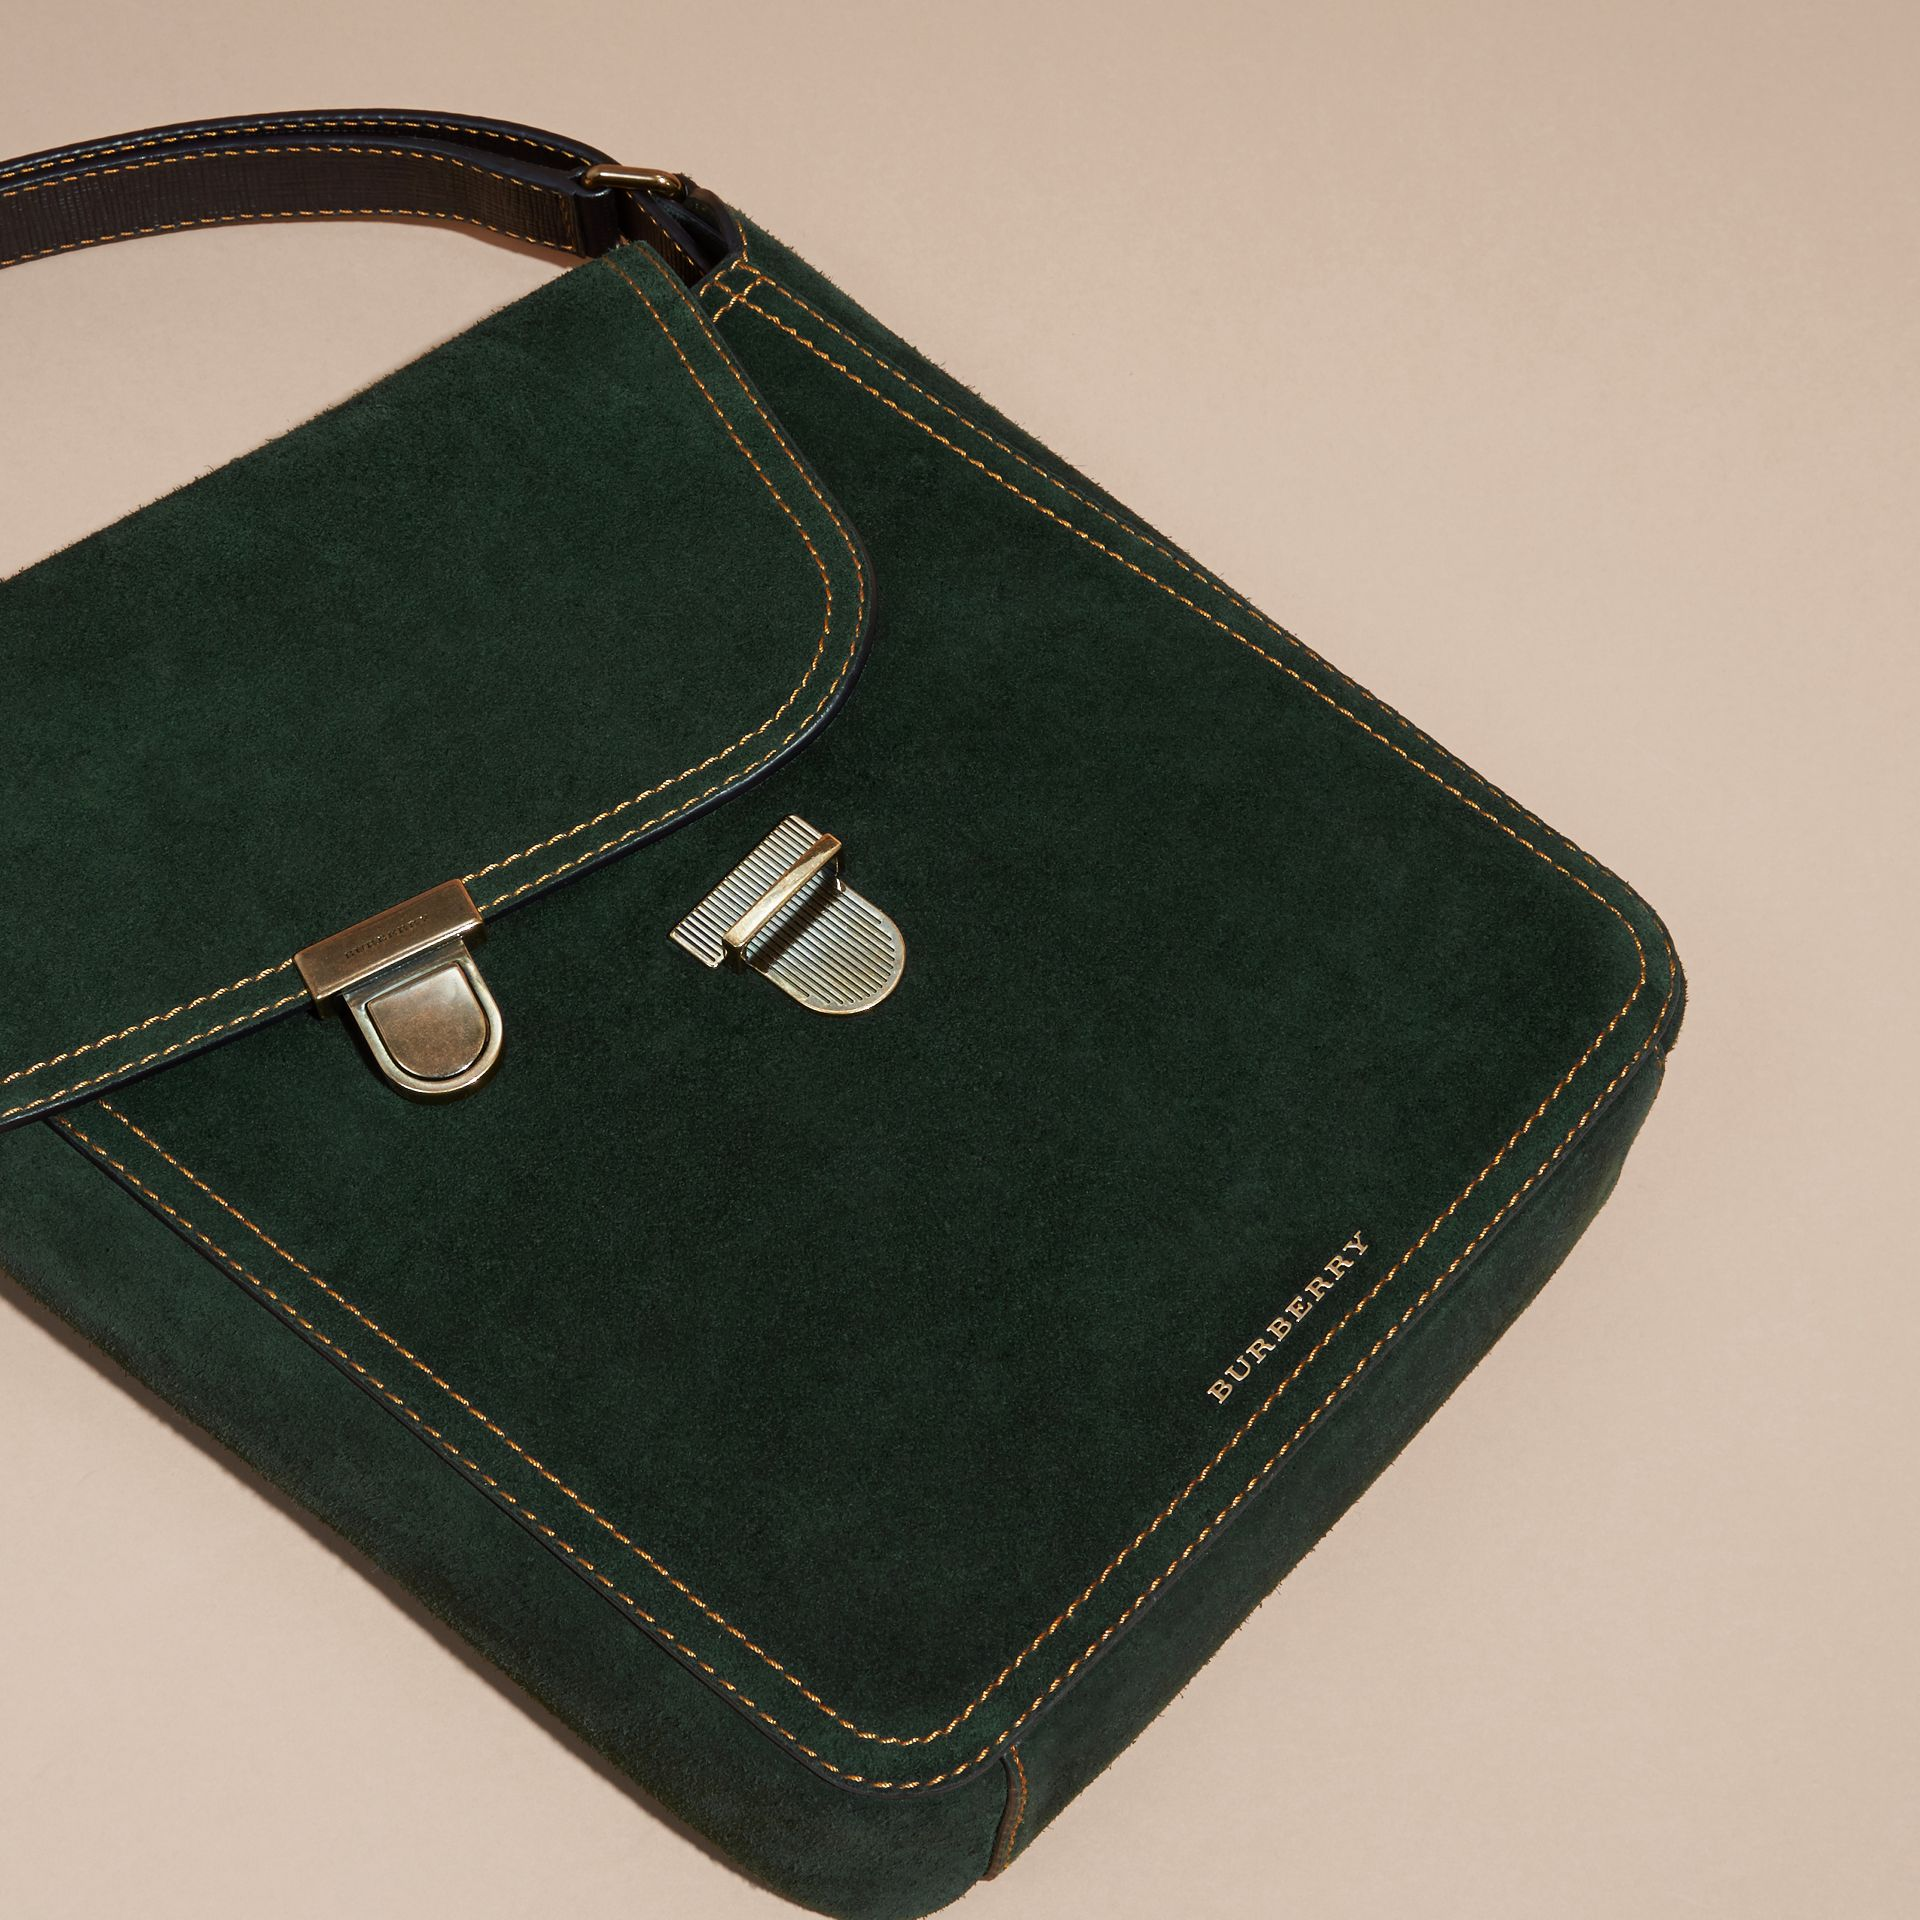 Dark forest green The Medium Satchel in English Suede - gallery image 2